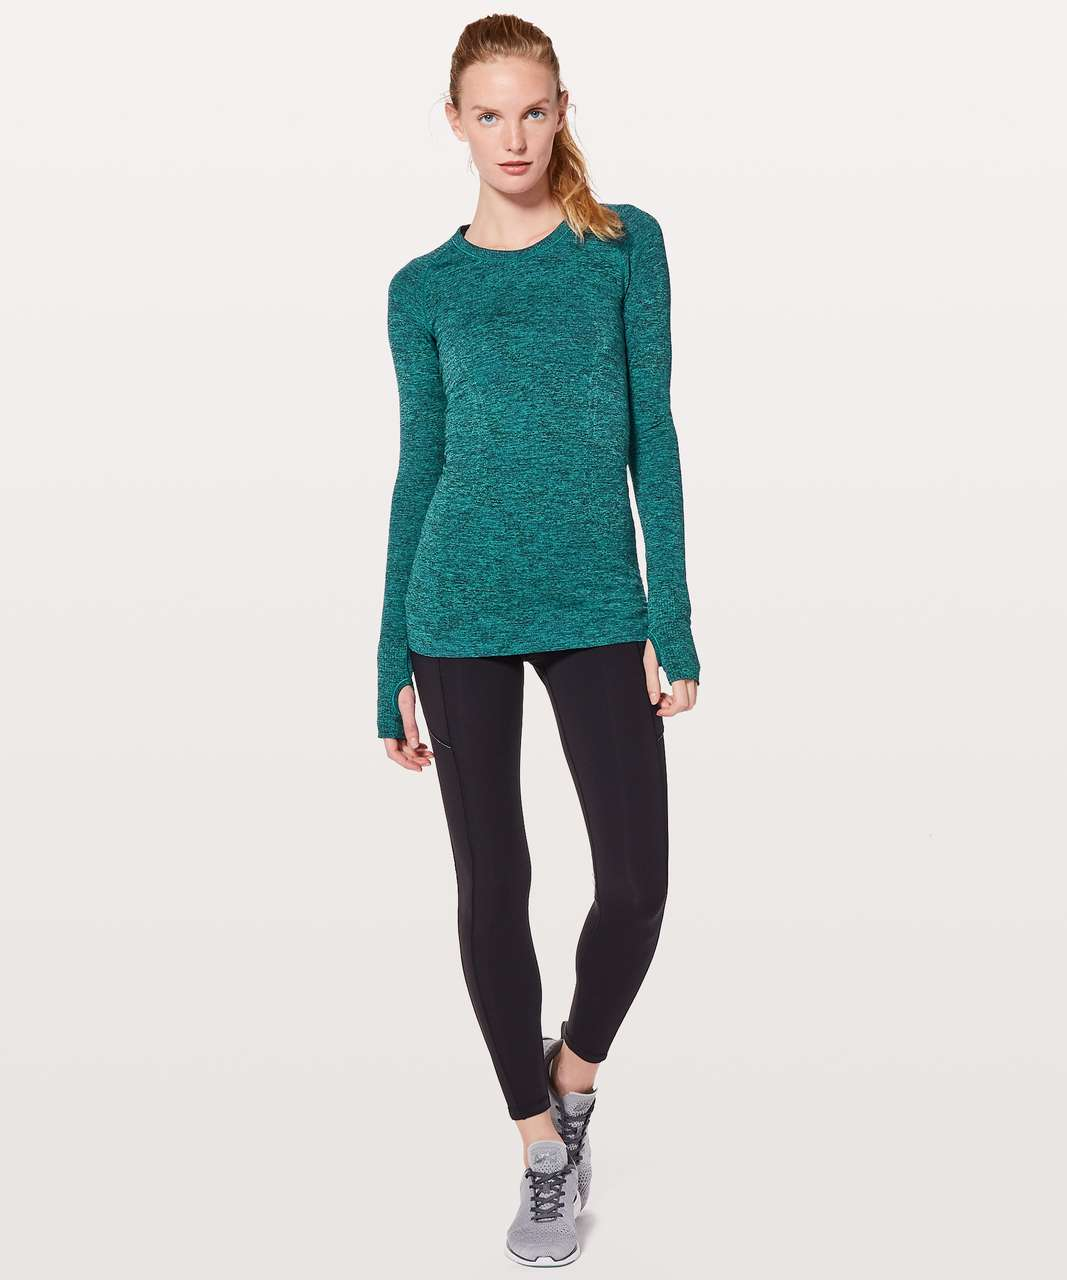 Lululemon Swiftly Tech Long Sleeve Crew - Teal Blue / Black